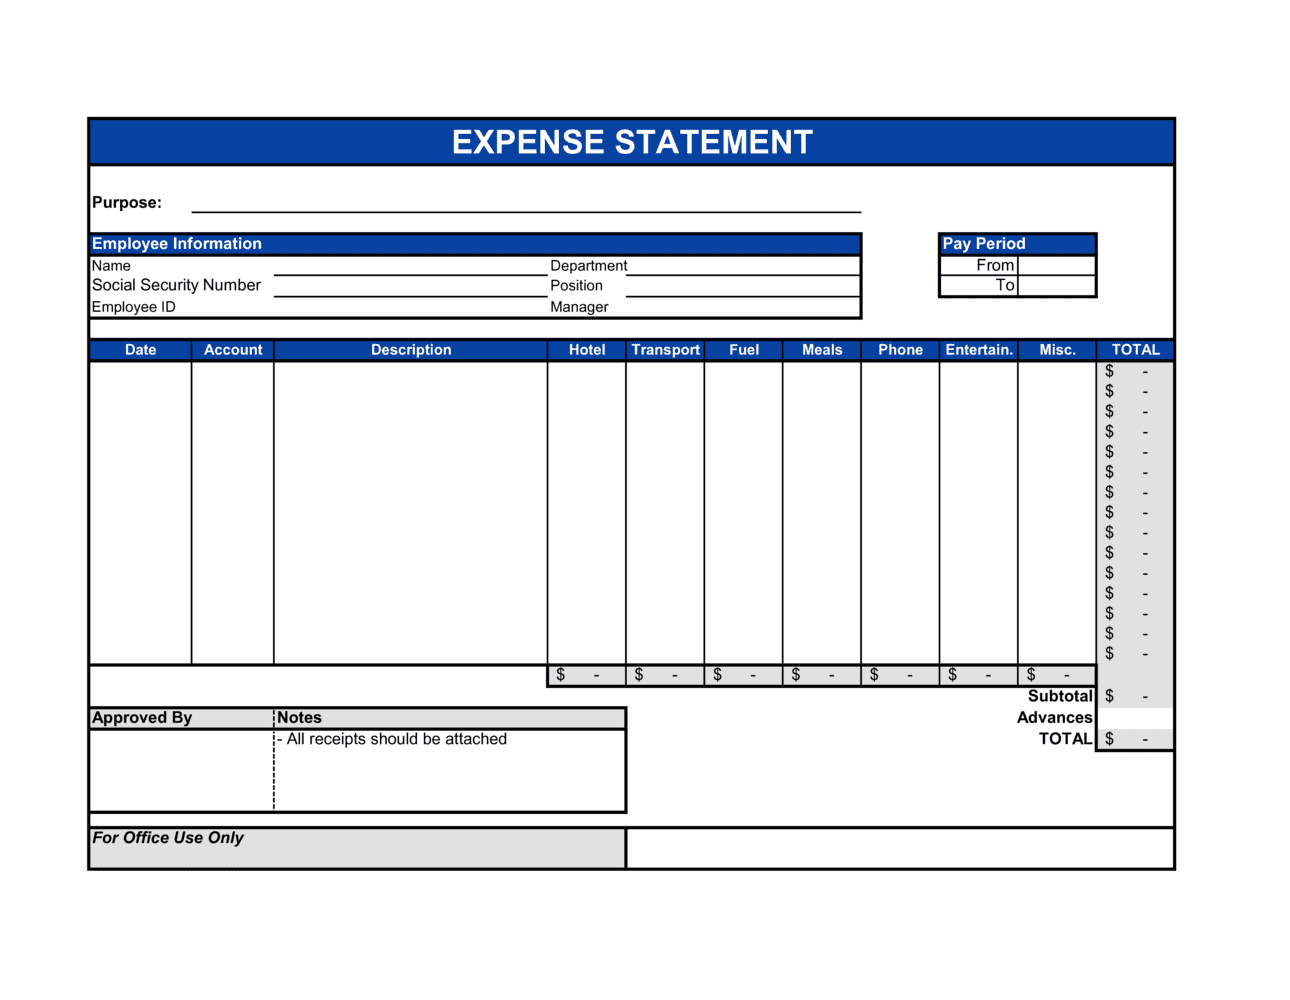 Business-in-a-Box's Expense Statement Template